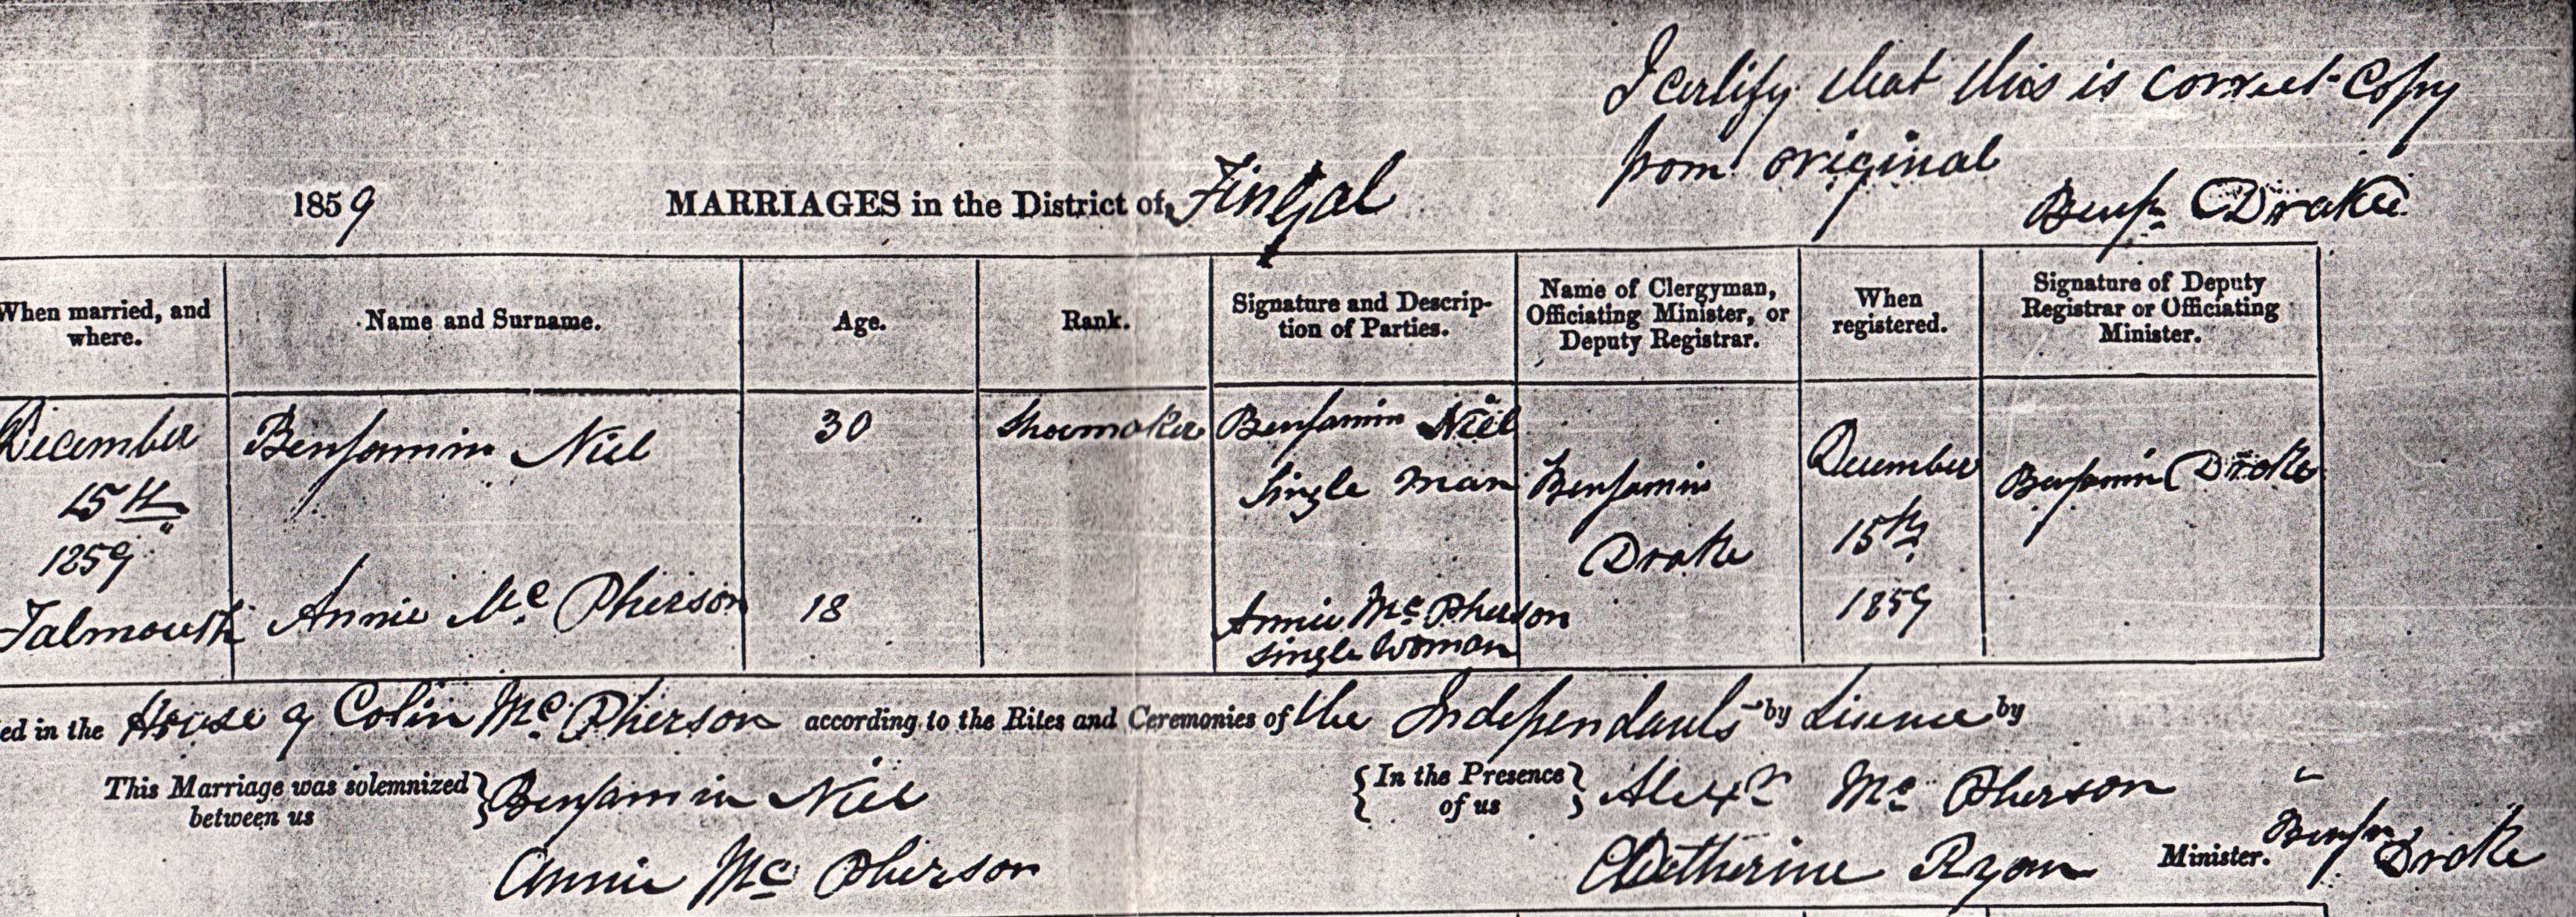 Annie McPherson marriage certificate 1859